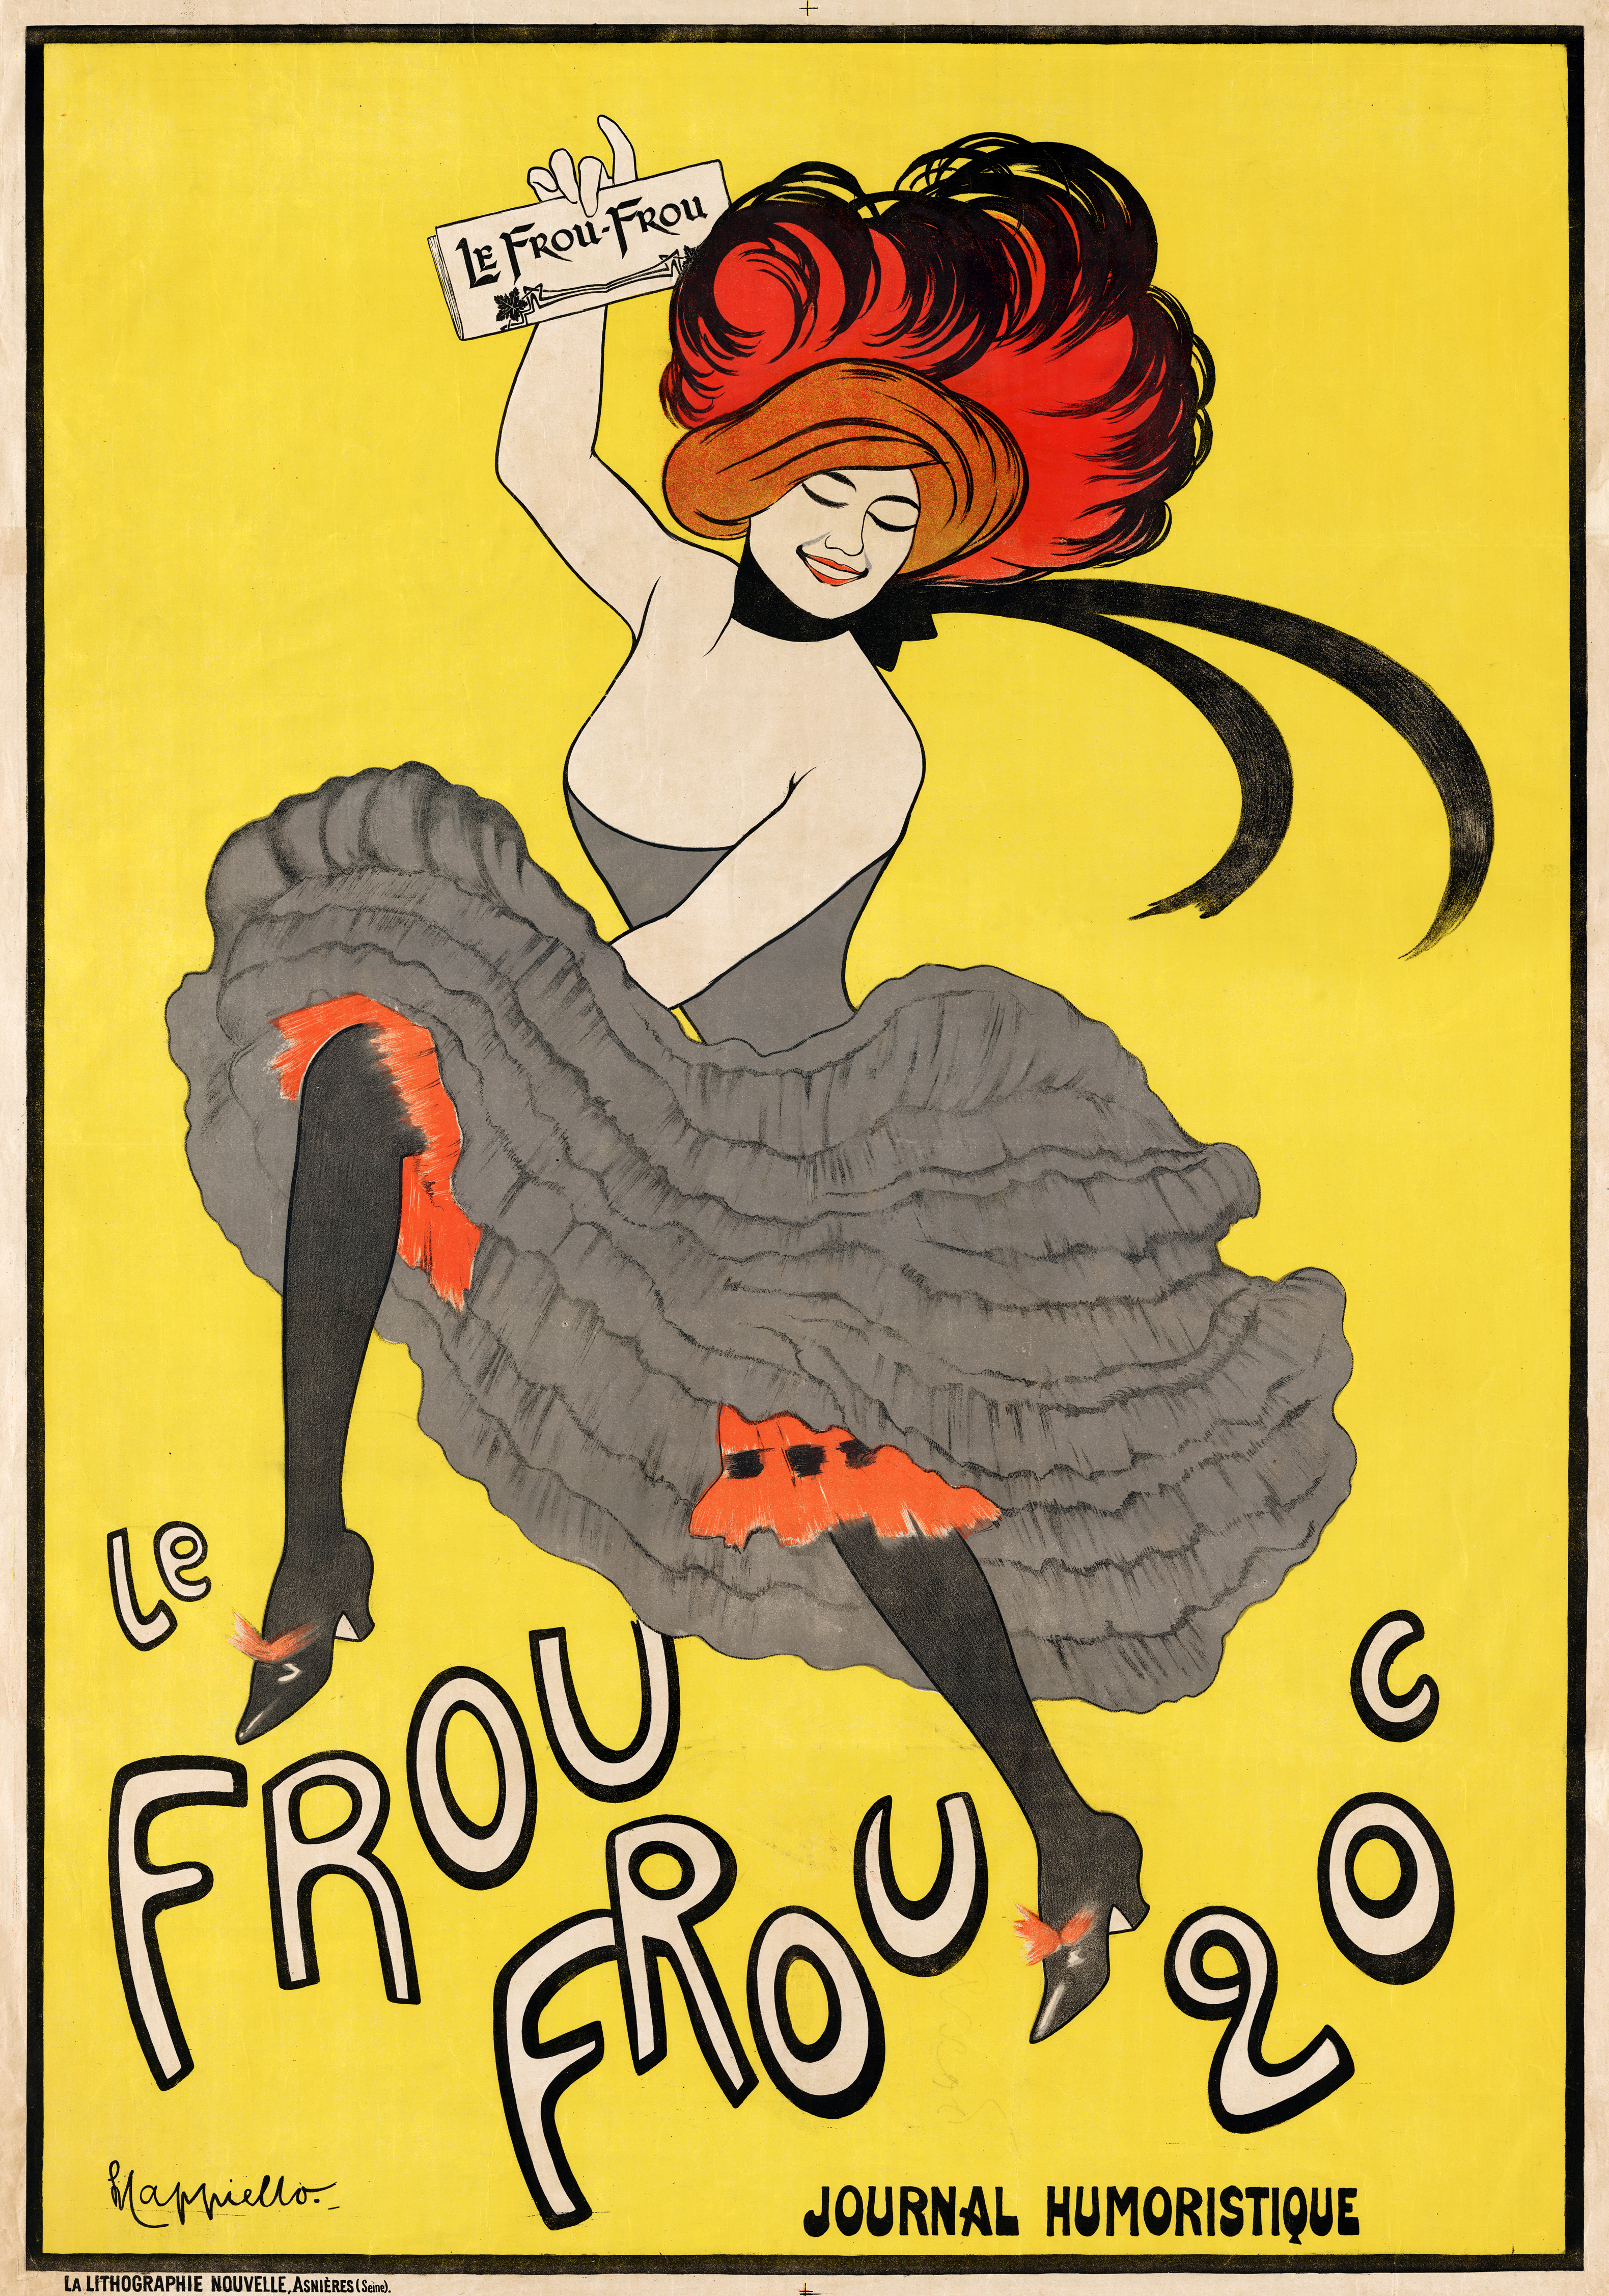 file le frou frou journal humoristique poster by leonetto